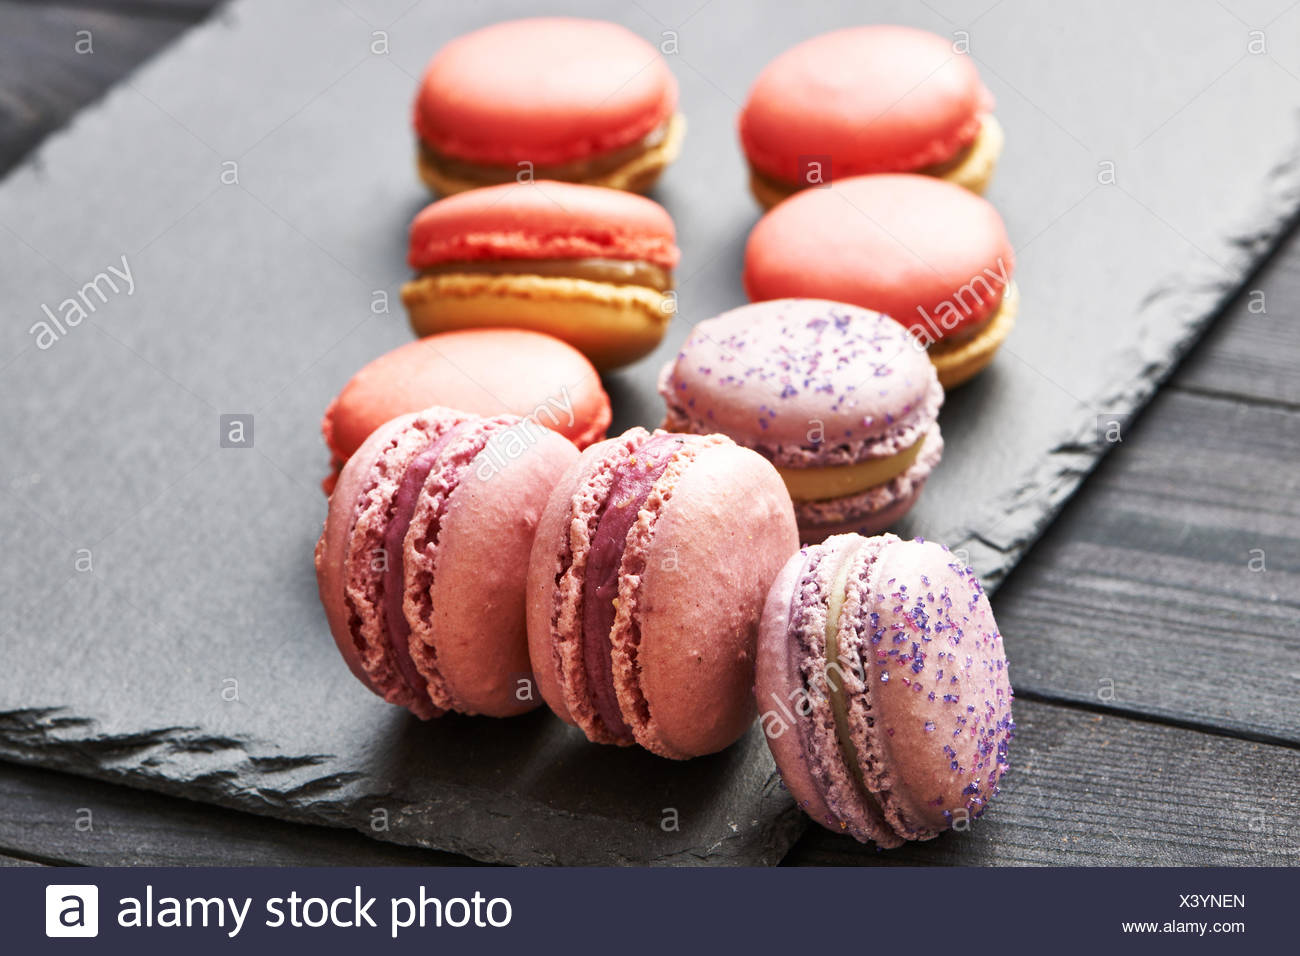 French delicious dessert macaroons - Stock Image